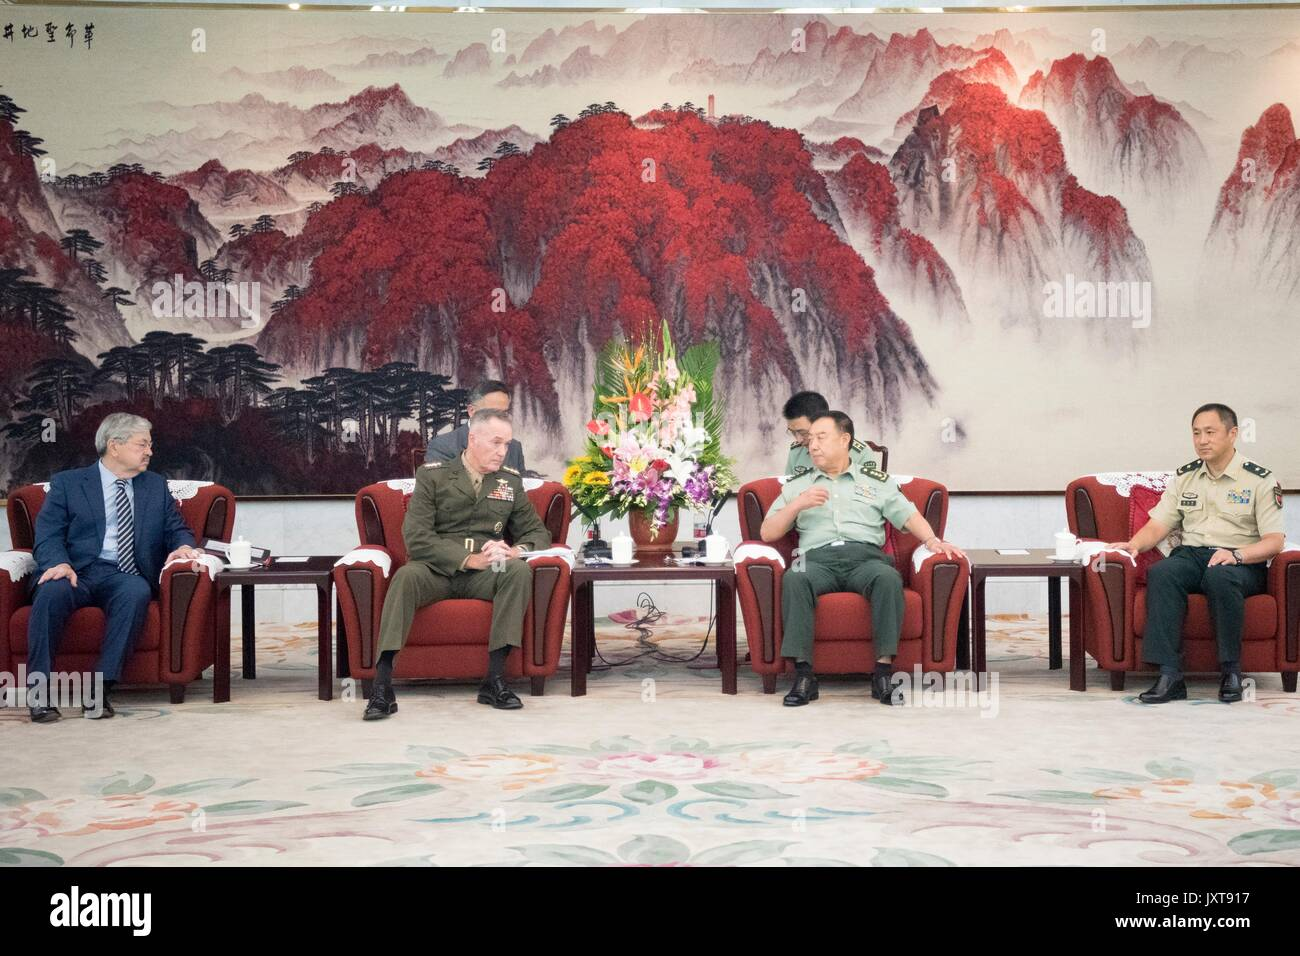 Beijing, China. 17th Aug, 2017. U.S. Chairman of the Joint Chiefs Gen. Joseph Dunford, left, meets with Chinese Gen. Fan Chanlong, vice chairman of the Central Military Commission, at the headquarters of the Peoples Liberation Army August 17, 2017 in Beijing, China. Dunford is in China to discuss defusing the situation in North Korea. Credit: Planetpix/Alamy Live News - Stock Image